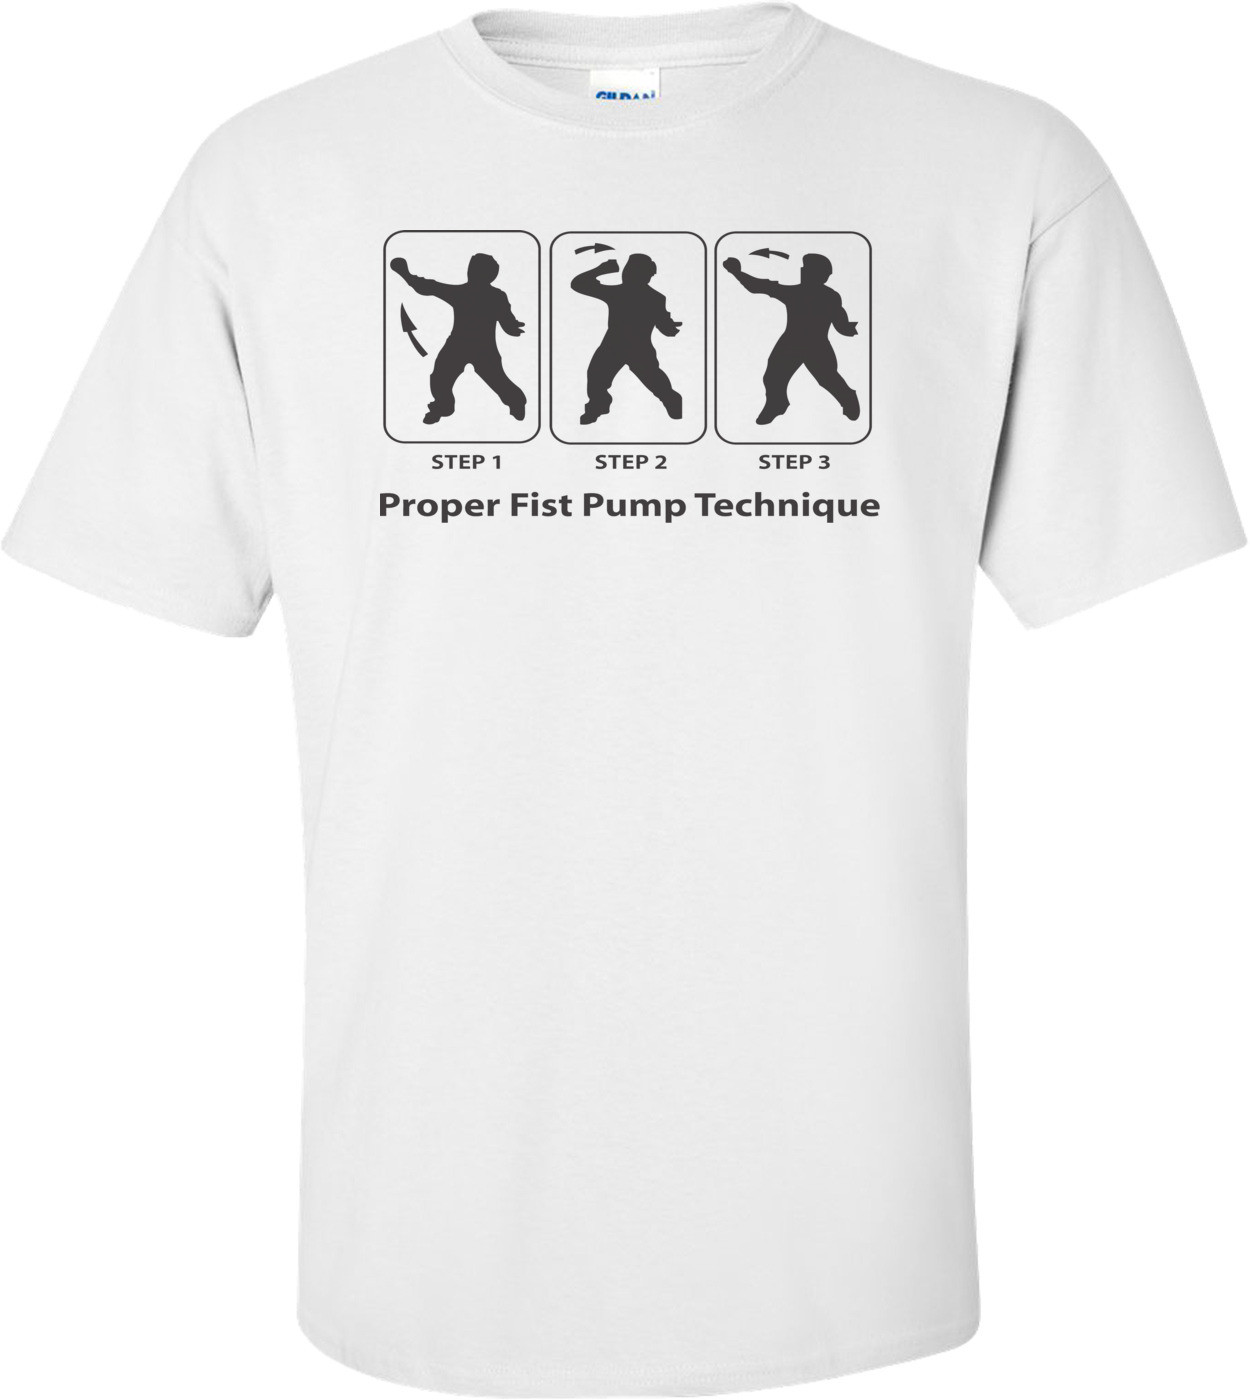 Fist Pumping Technique- Jersey Shore T-shirt